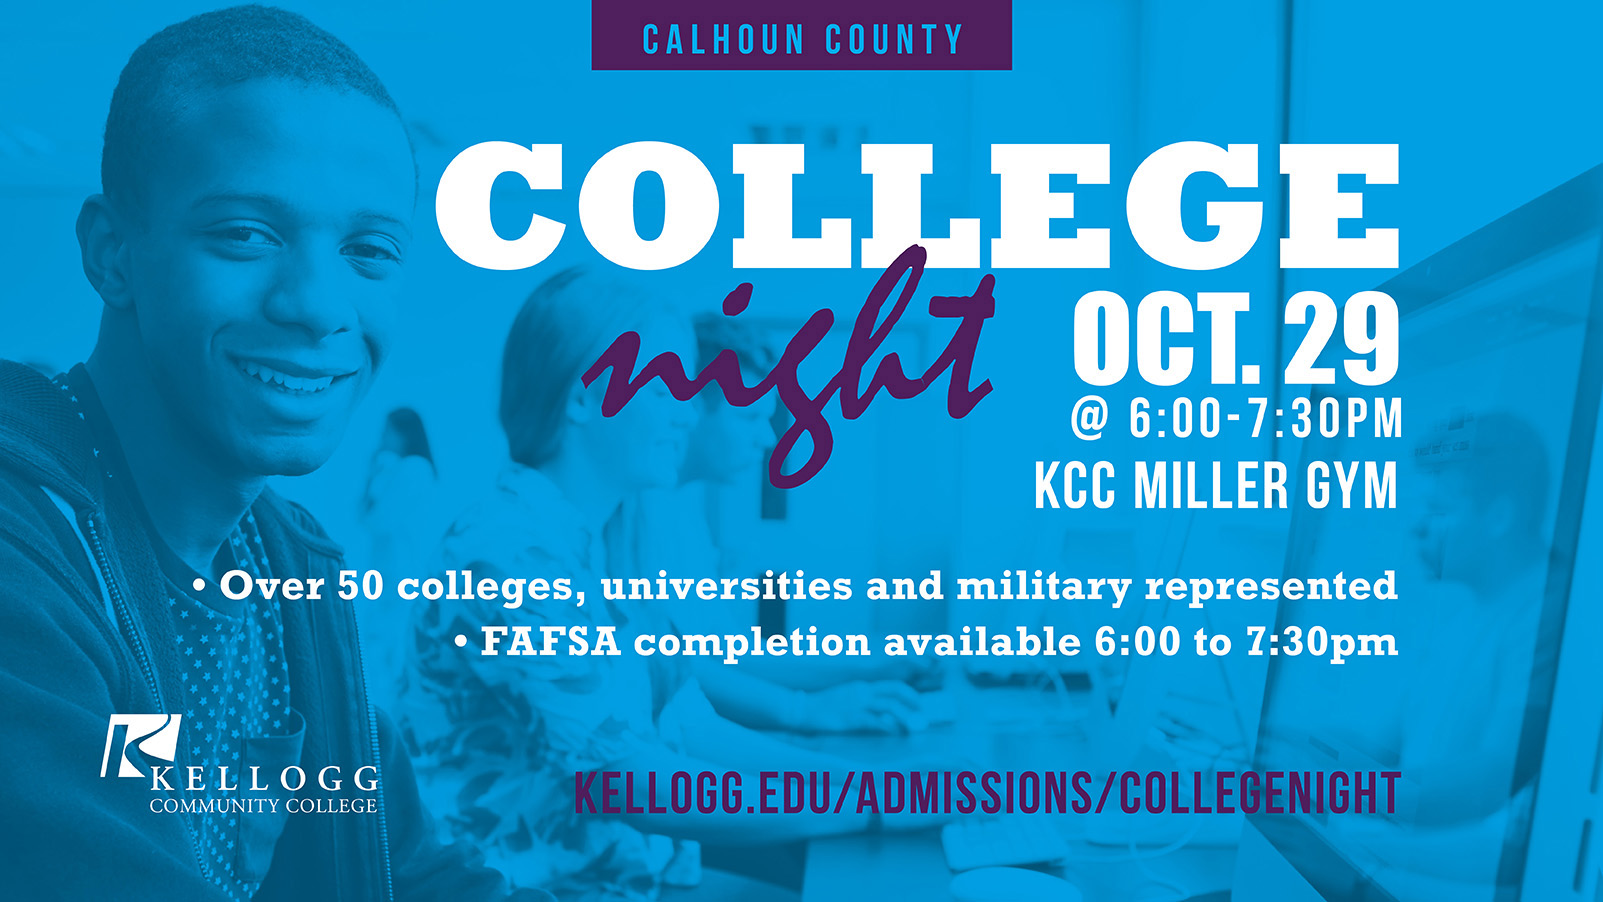 A decorative text slide promoting KCC's 2019 Calhoun County College Night.